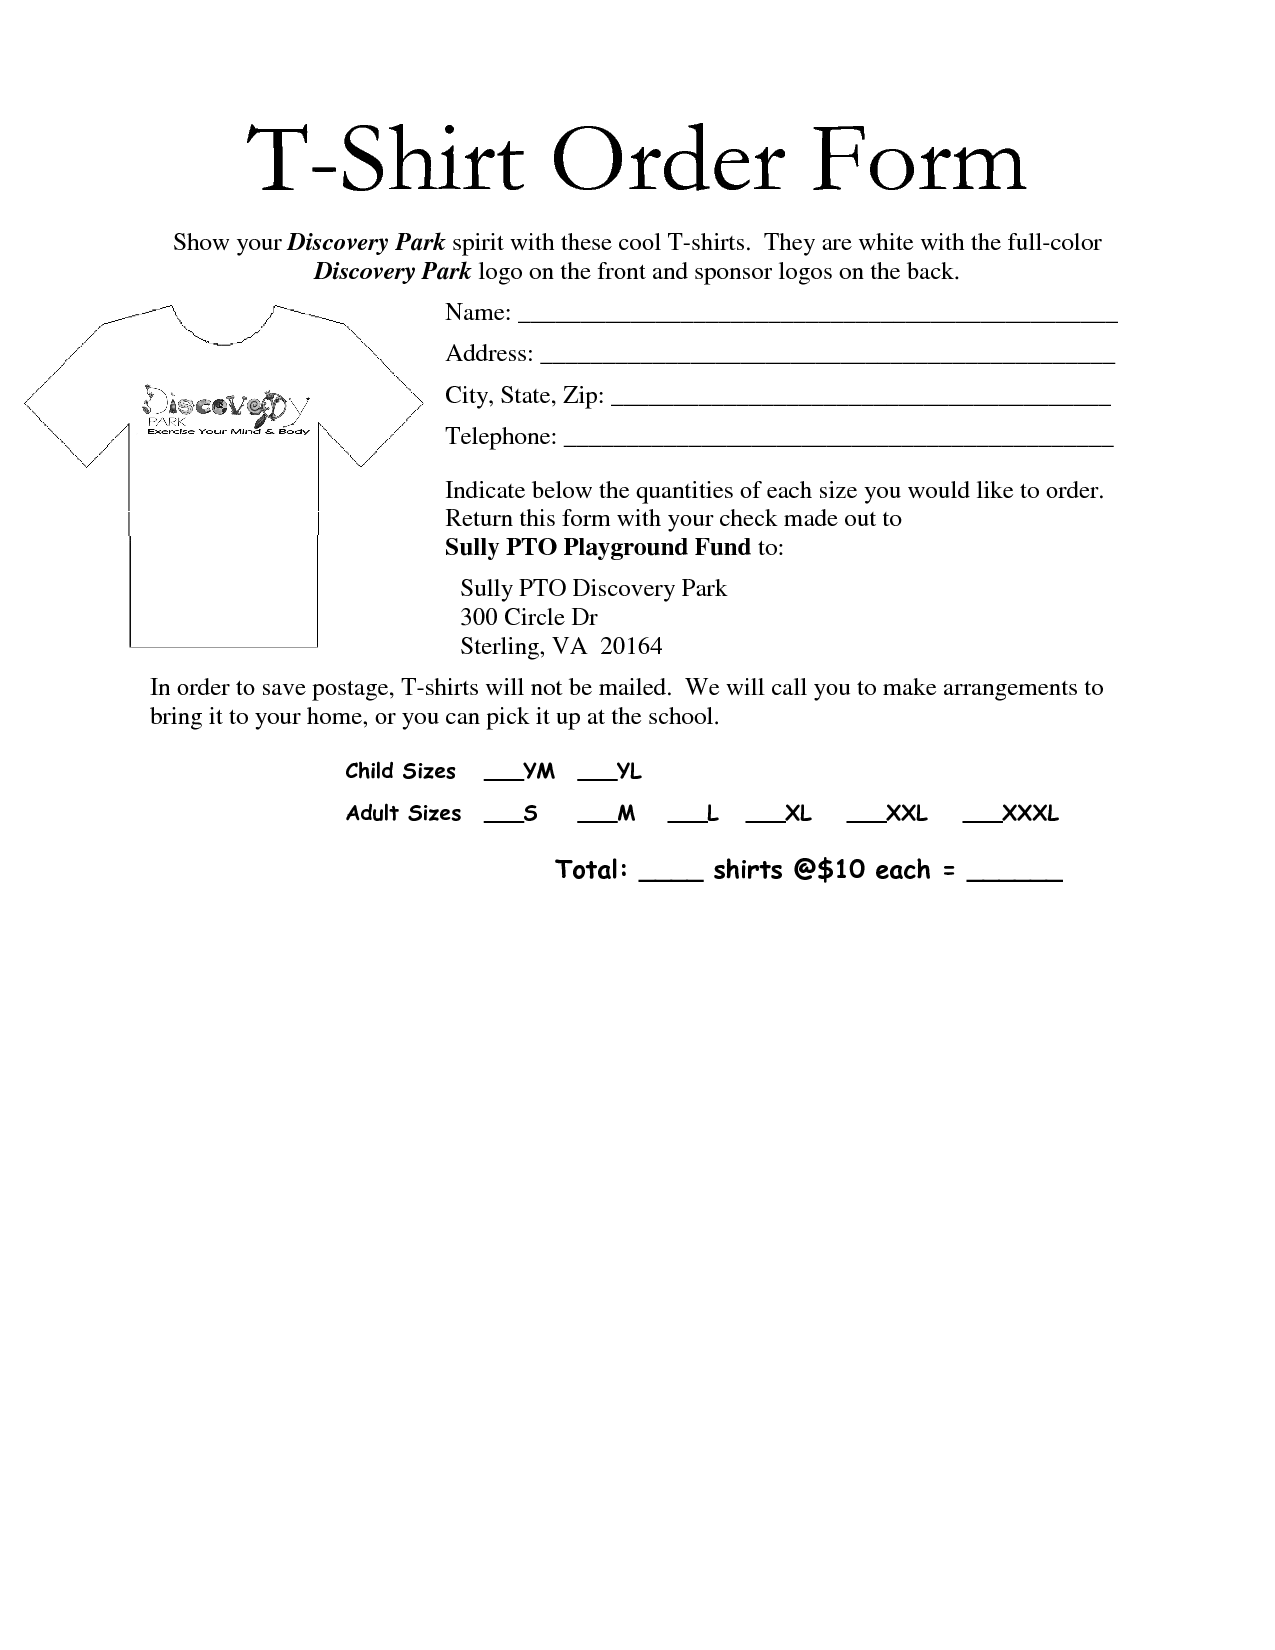 35 awesome t shirt order form template free images projects to try 35 awesome t shirt order form template free images business card templates resume templates flashek Images